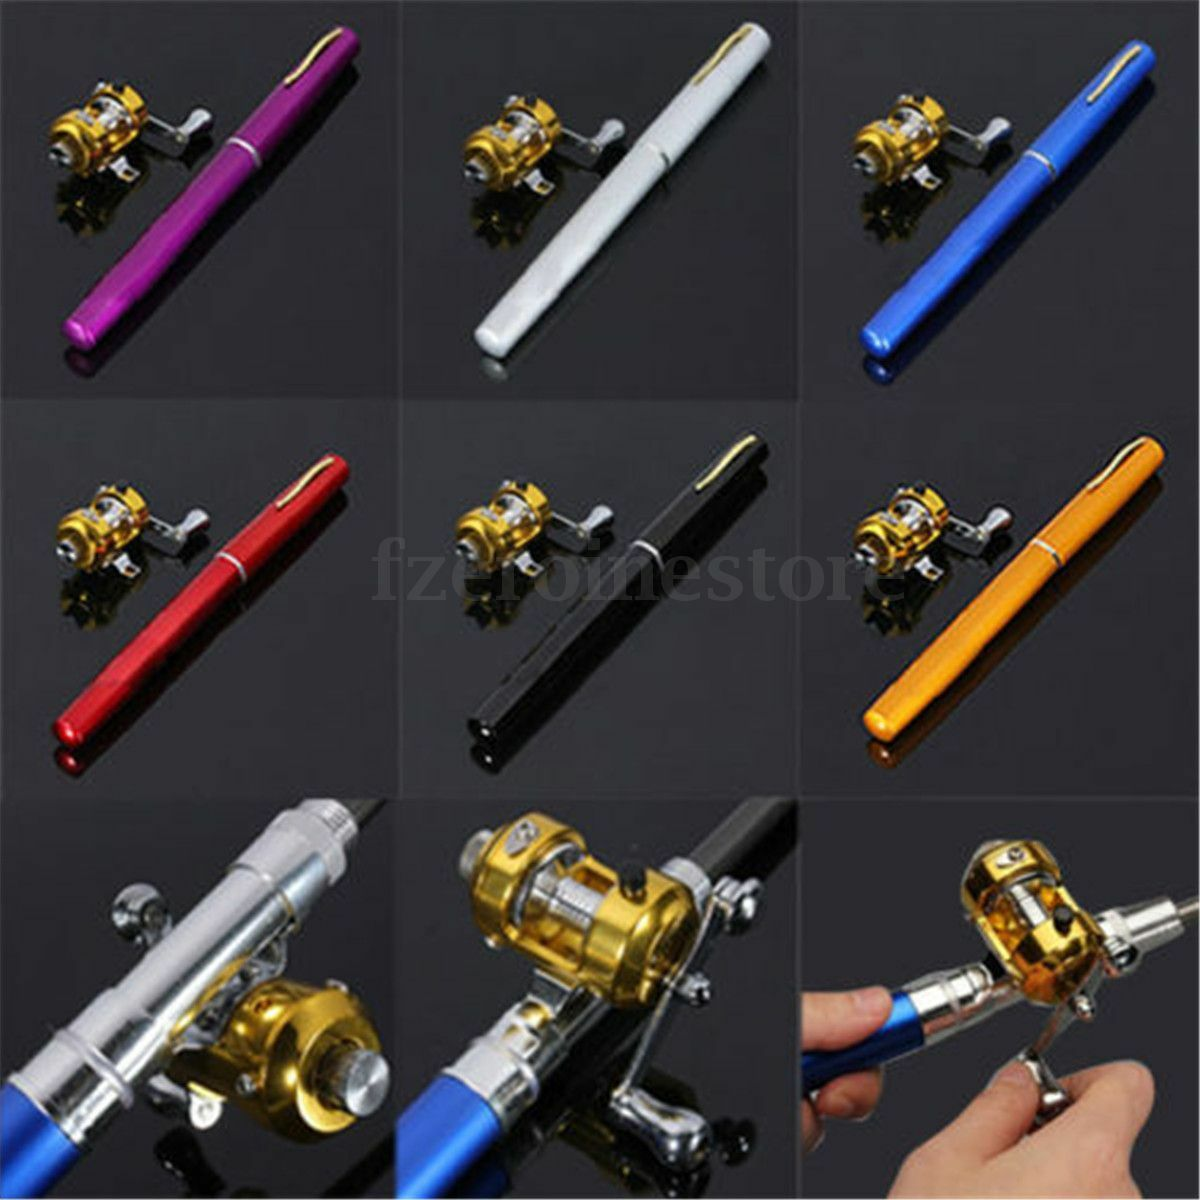 Mini telescopic portable pocket aluminum alloy pen fishing for Craigslist fishing rods and reels